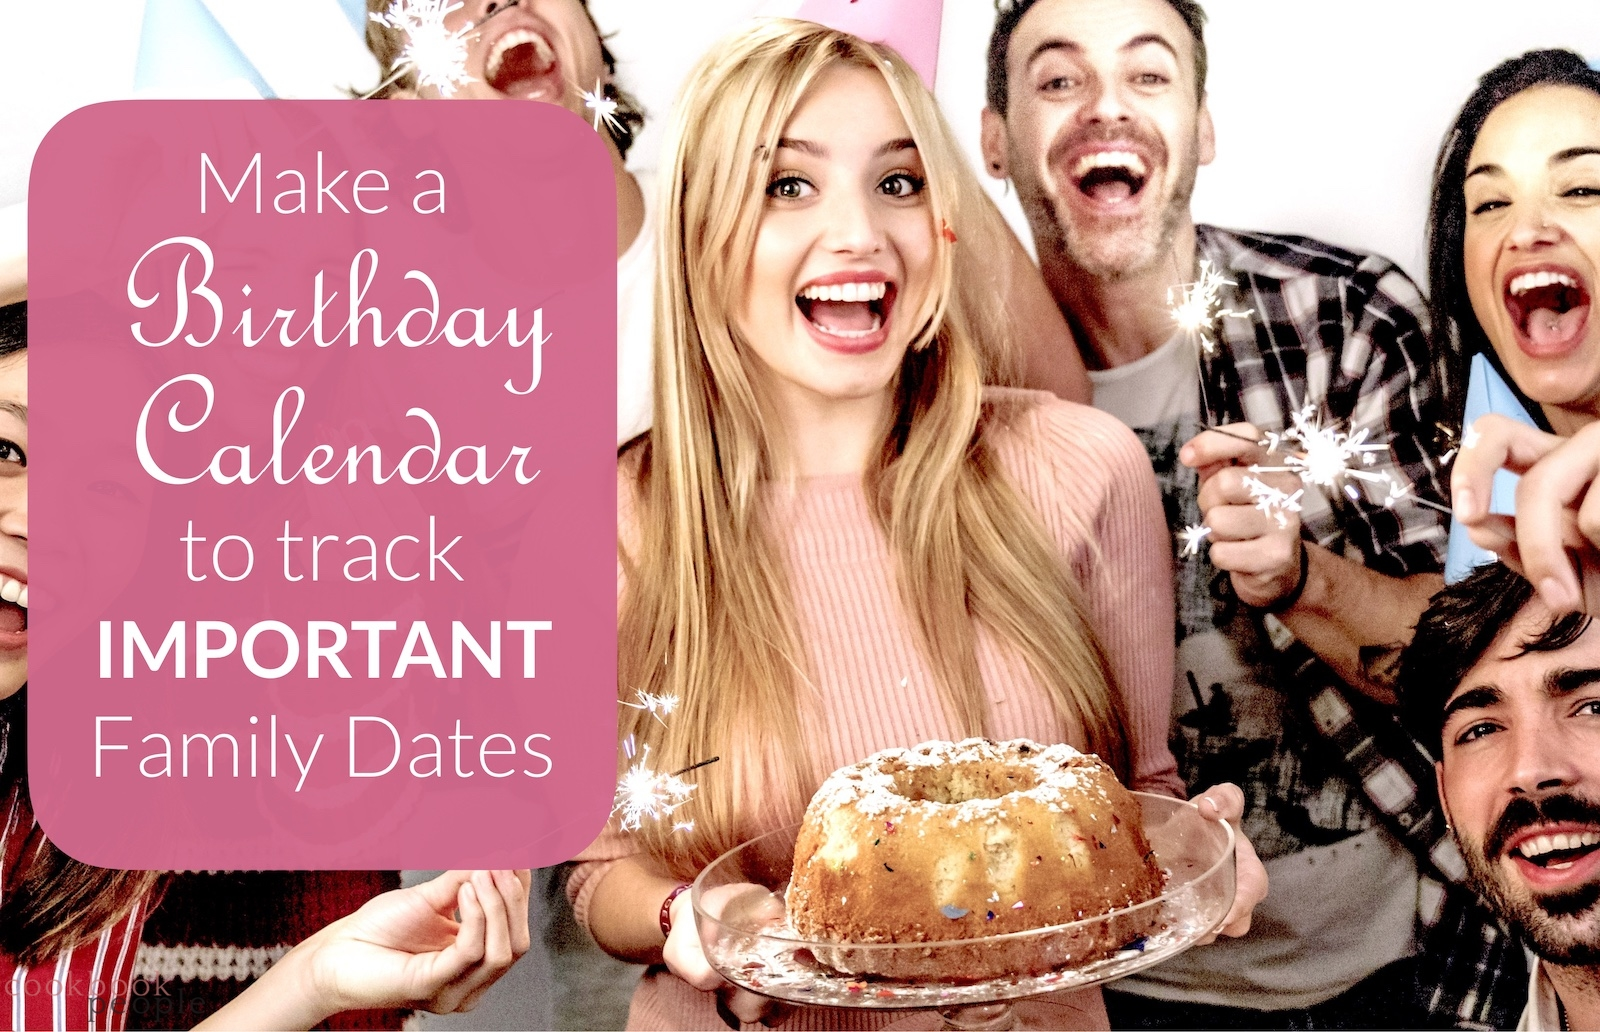 Group of friends at birthday party overlaid with title: Make a Birthday Calendar to Track Important Family Dates